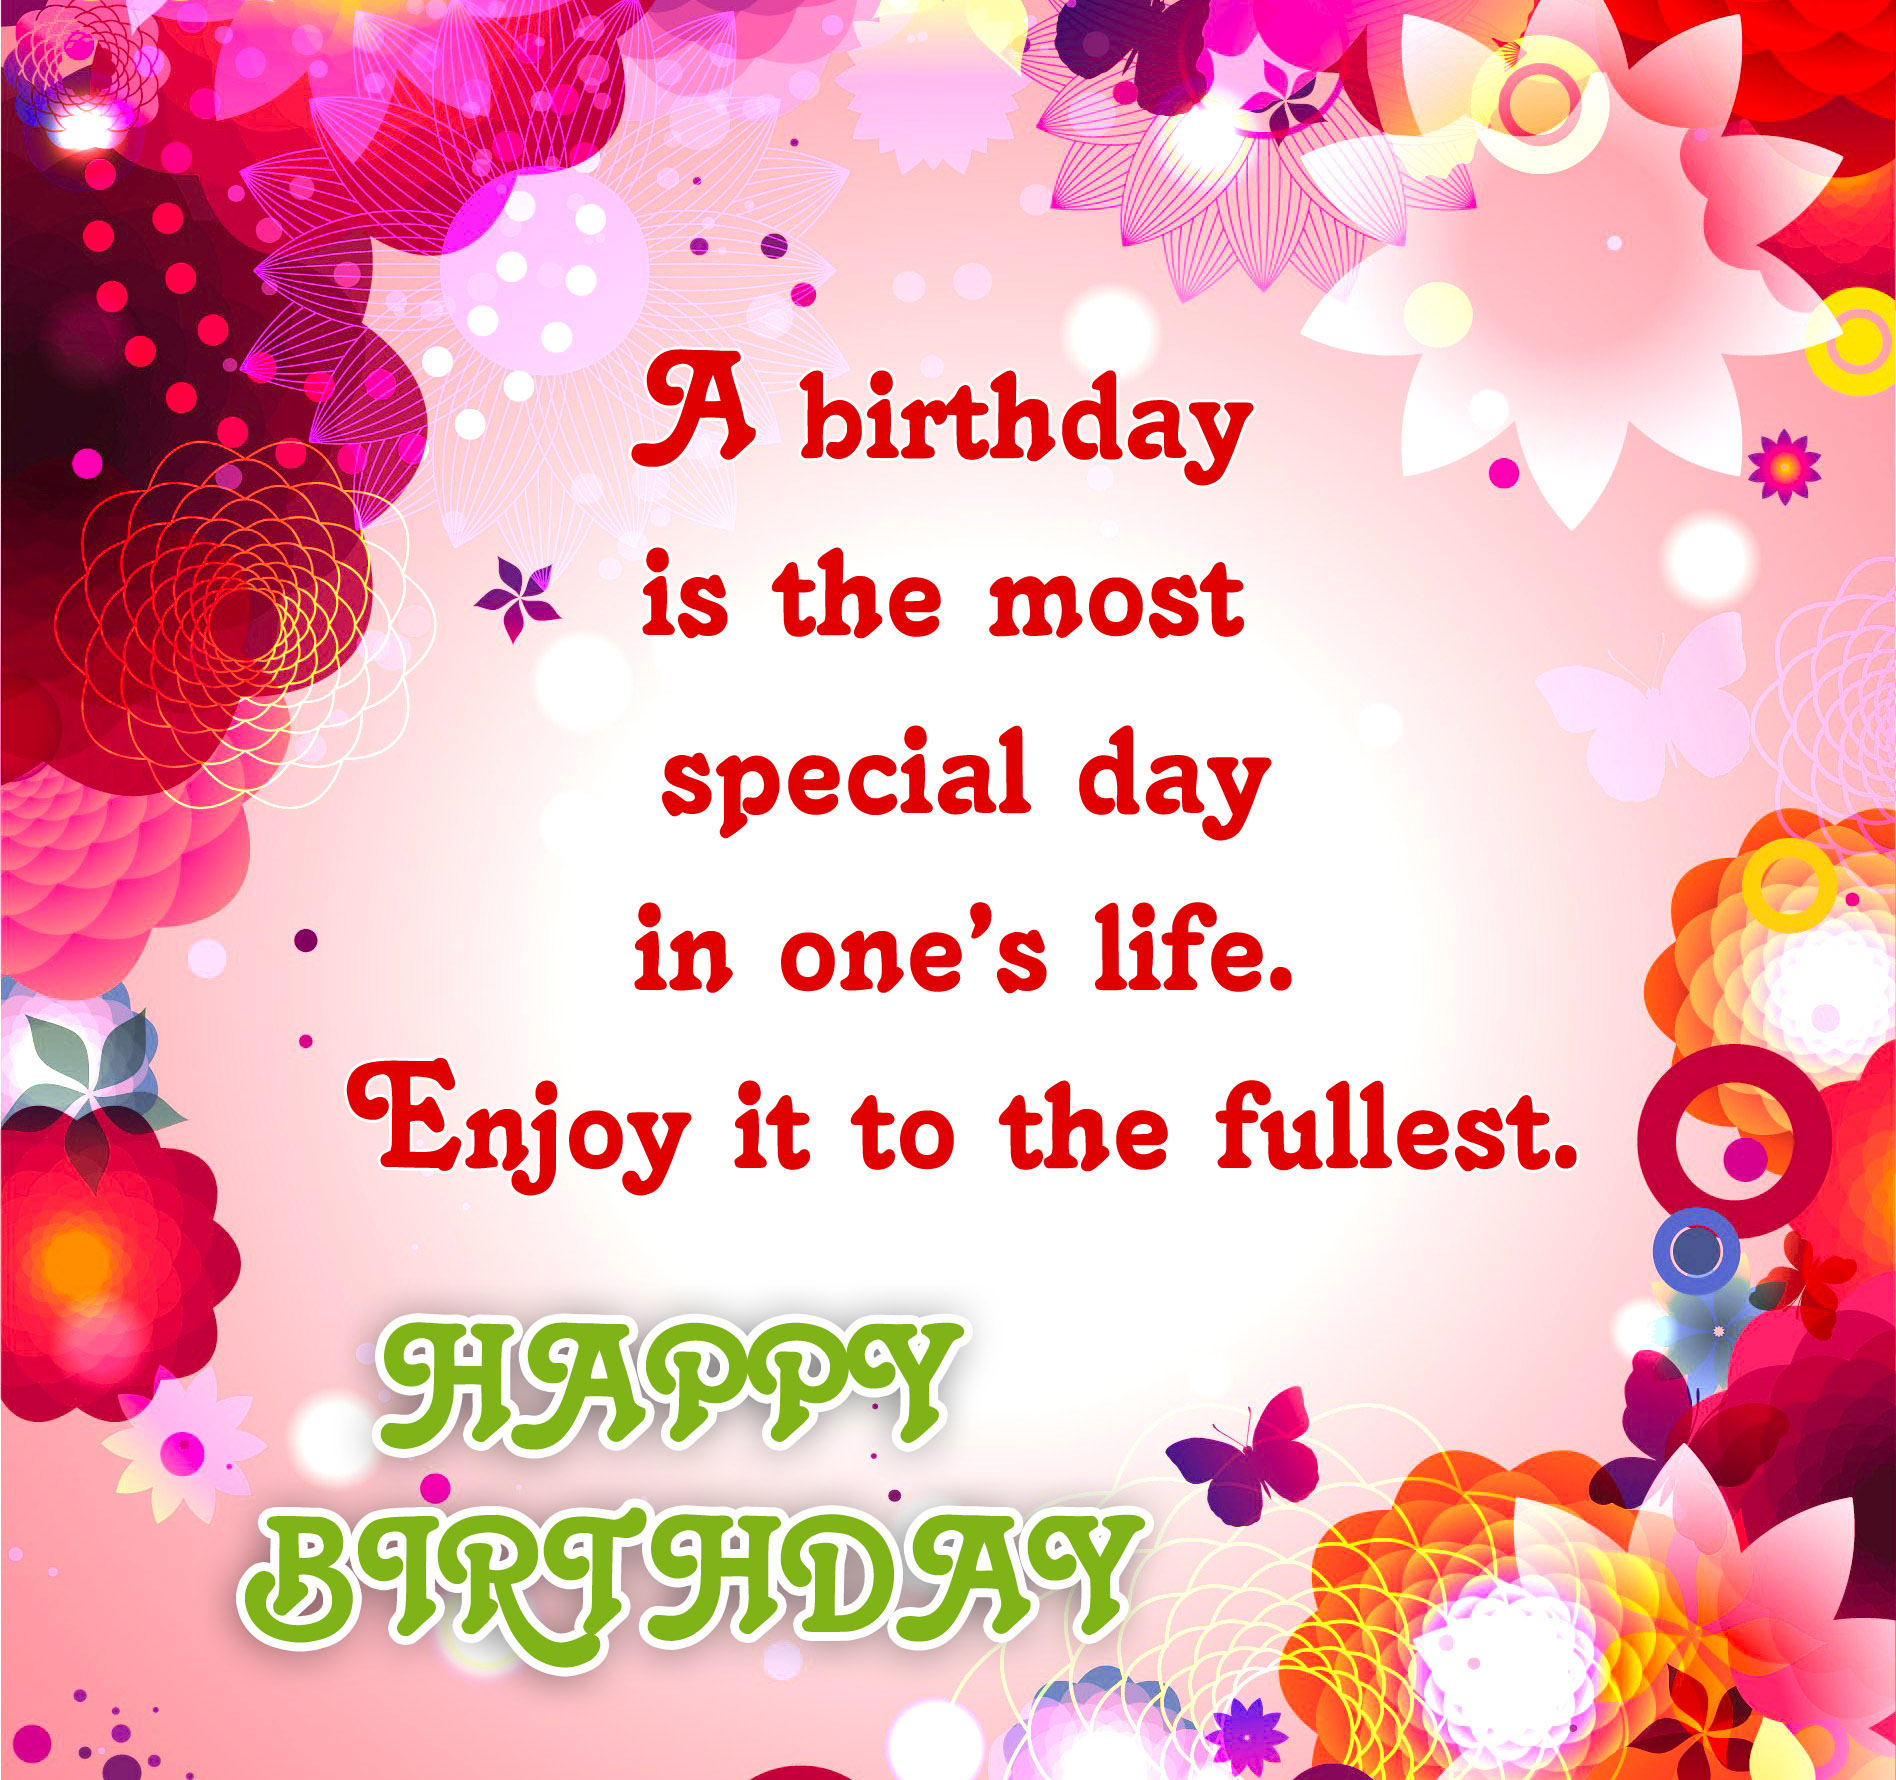 Happy birthday wishes online massages images may all your dreams happy birthday wishes online massages images may all your dreams and wishes come true happy birthday the collection of special and great birt kristyandbryce Image collections